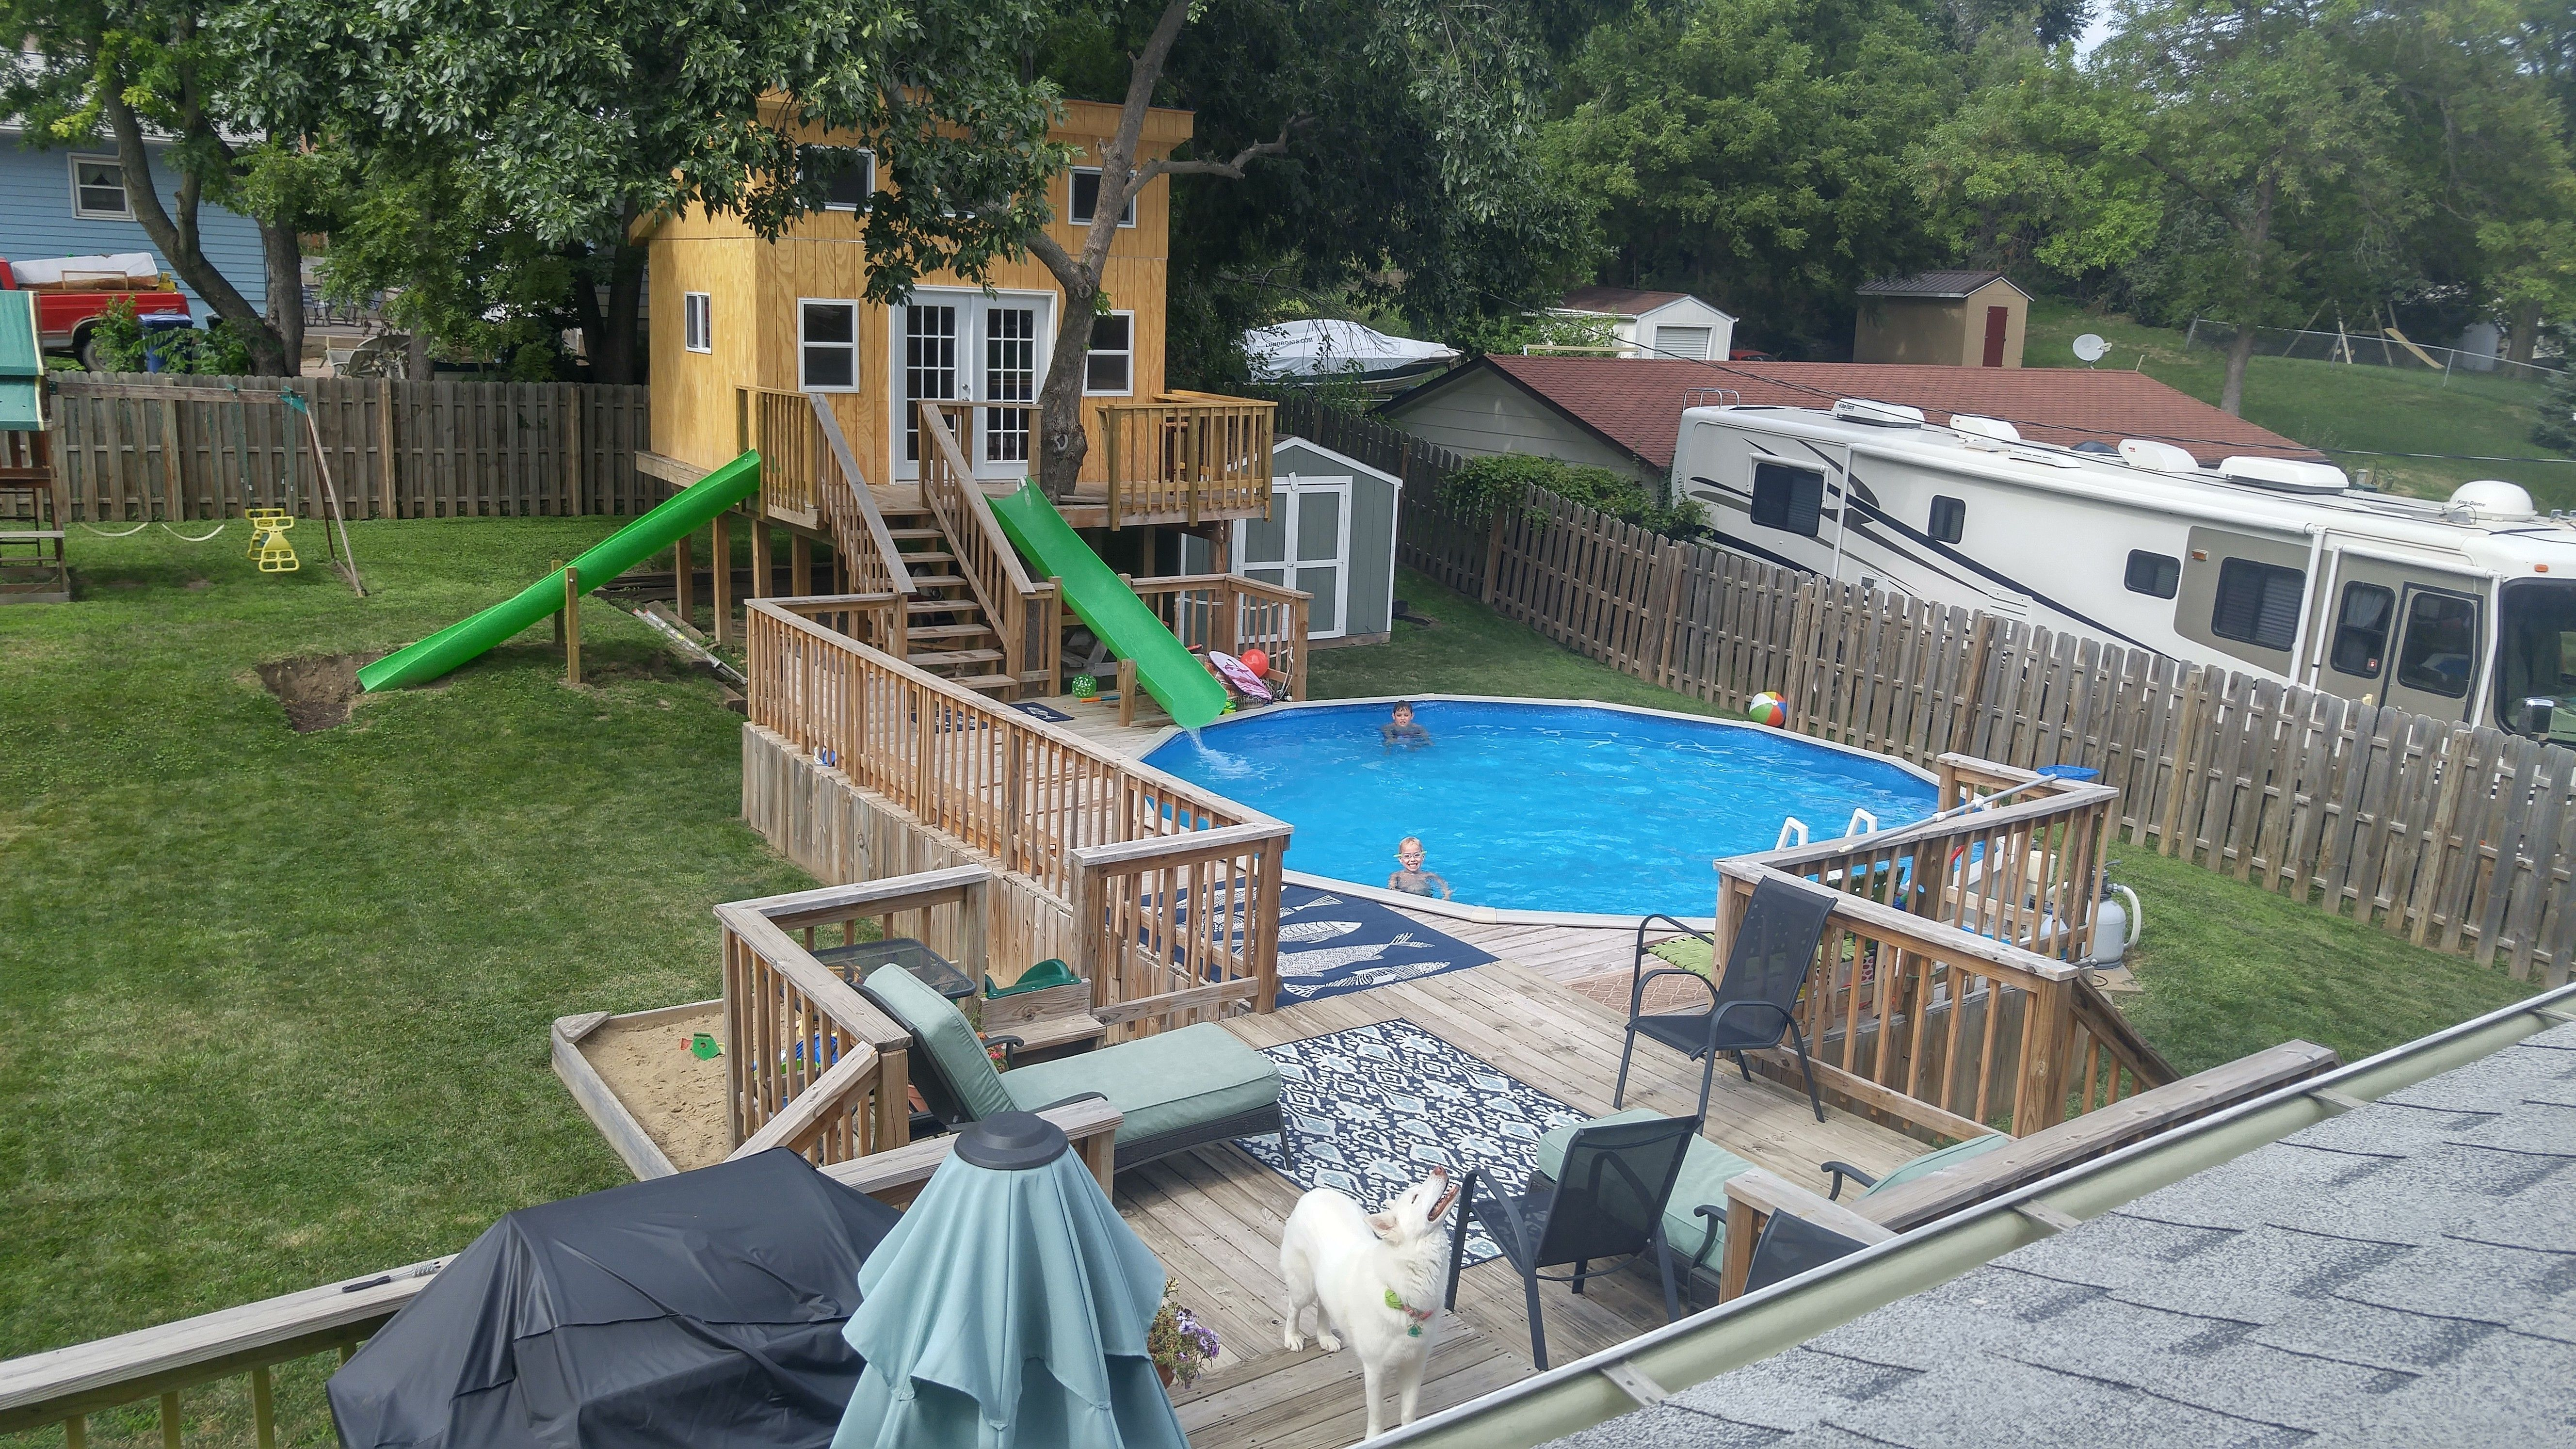 Backyard Tree House With Above Ground Pool Water Slide And